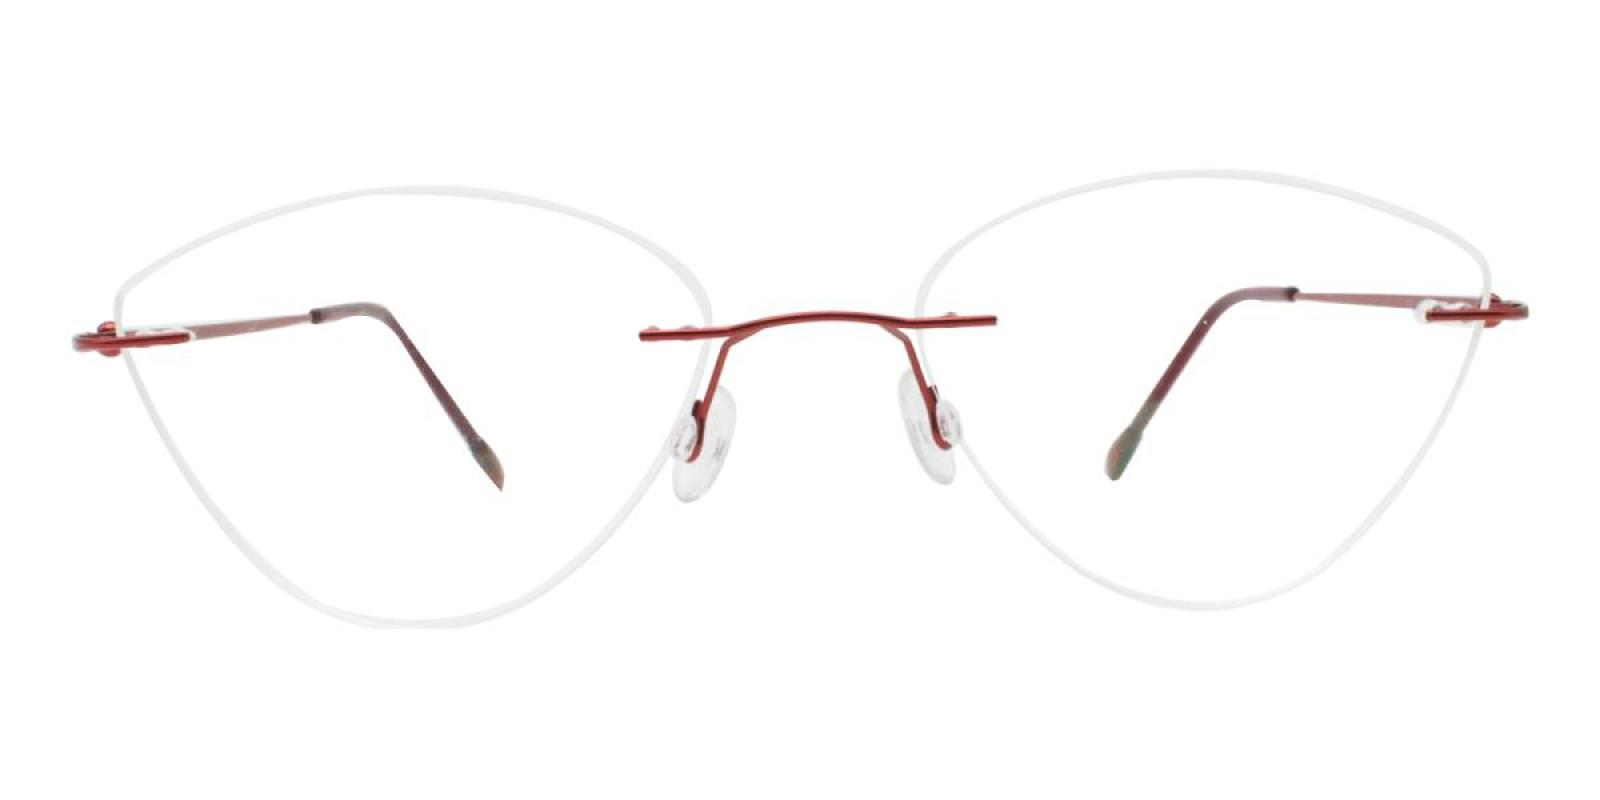 Huram-Red-Cat / Varieties-Metal-Eyeglasses-additional2